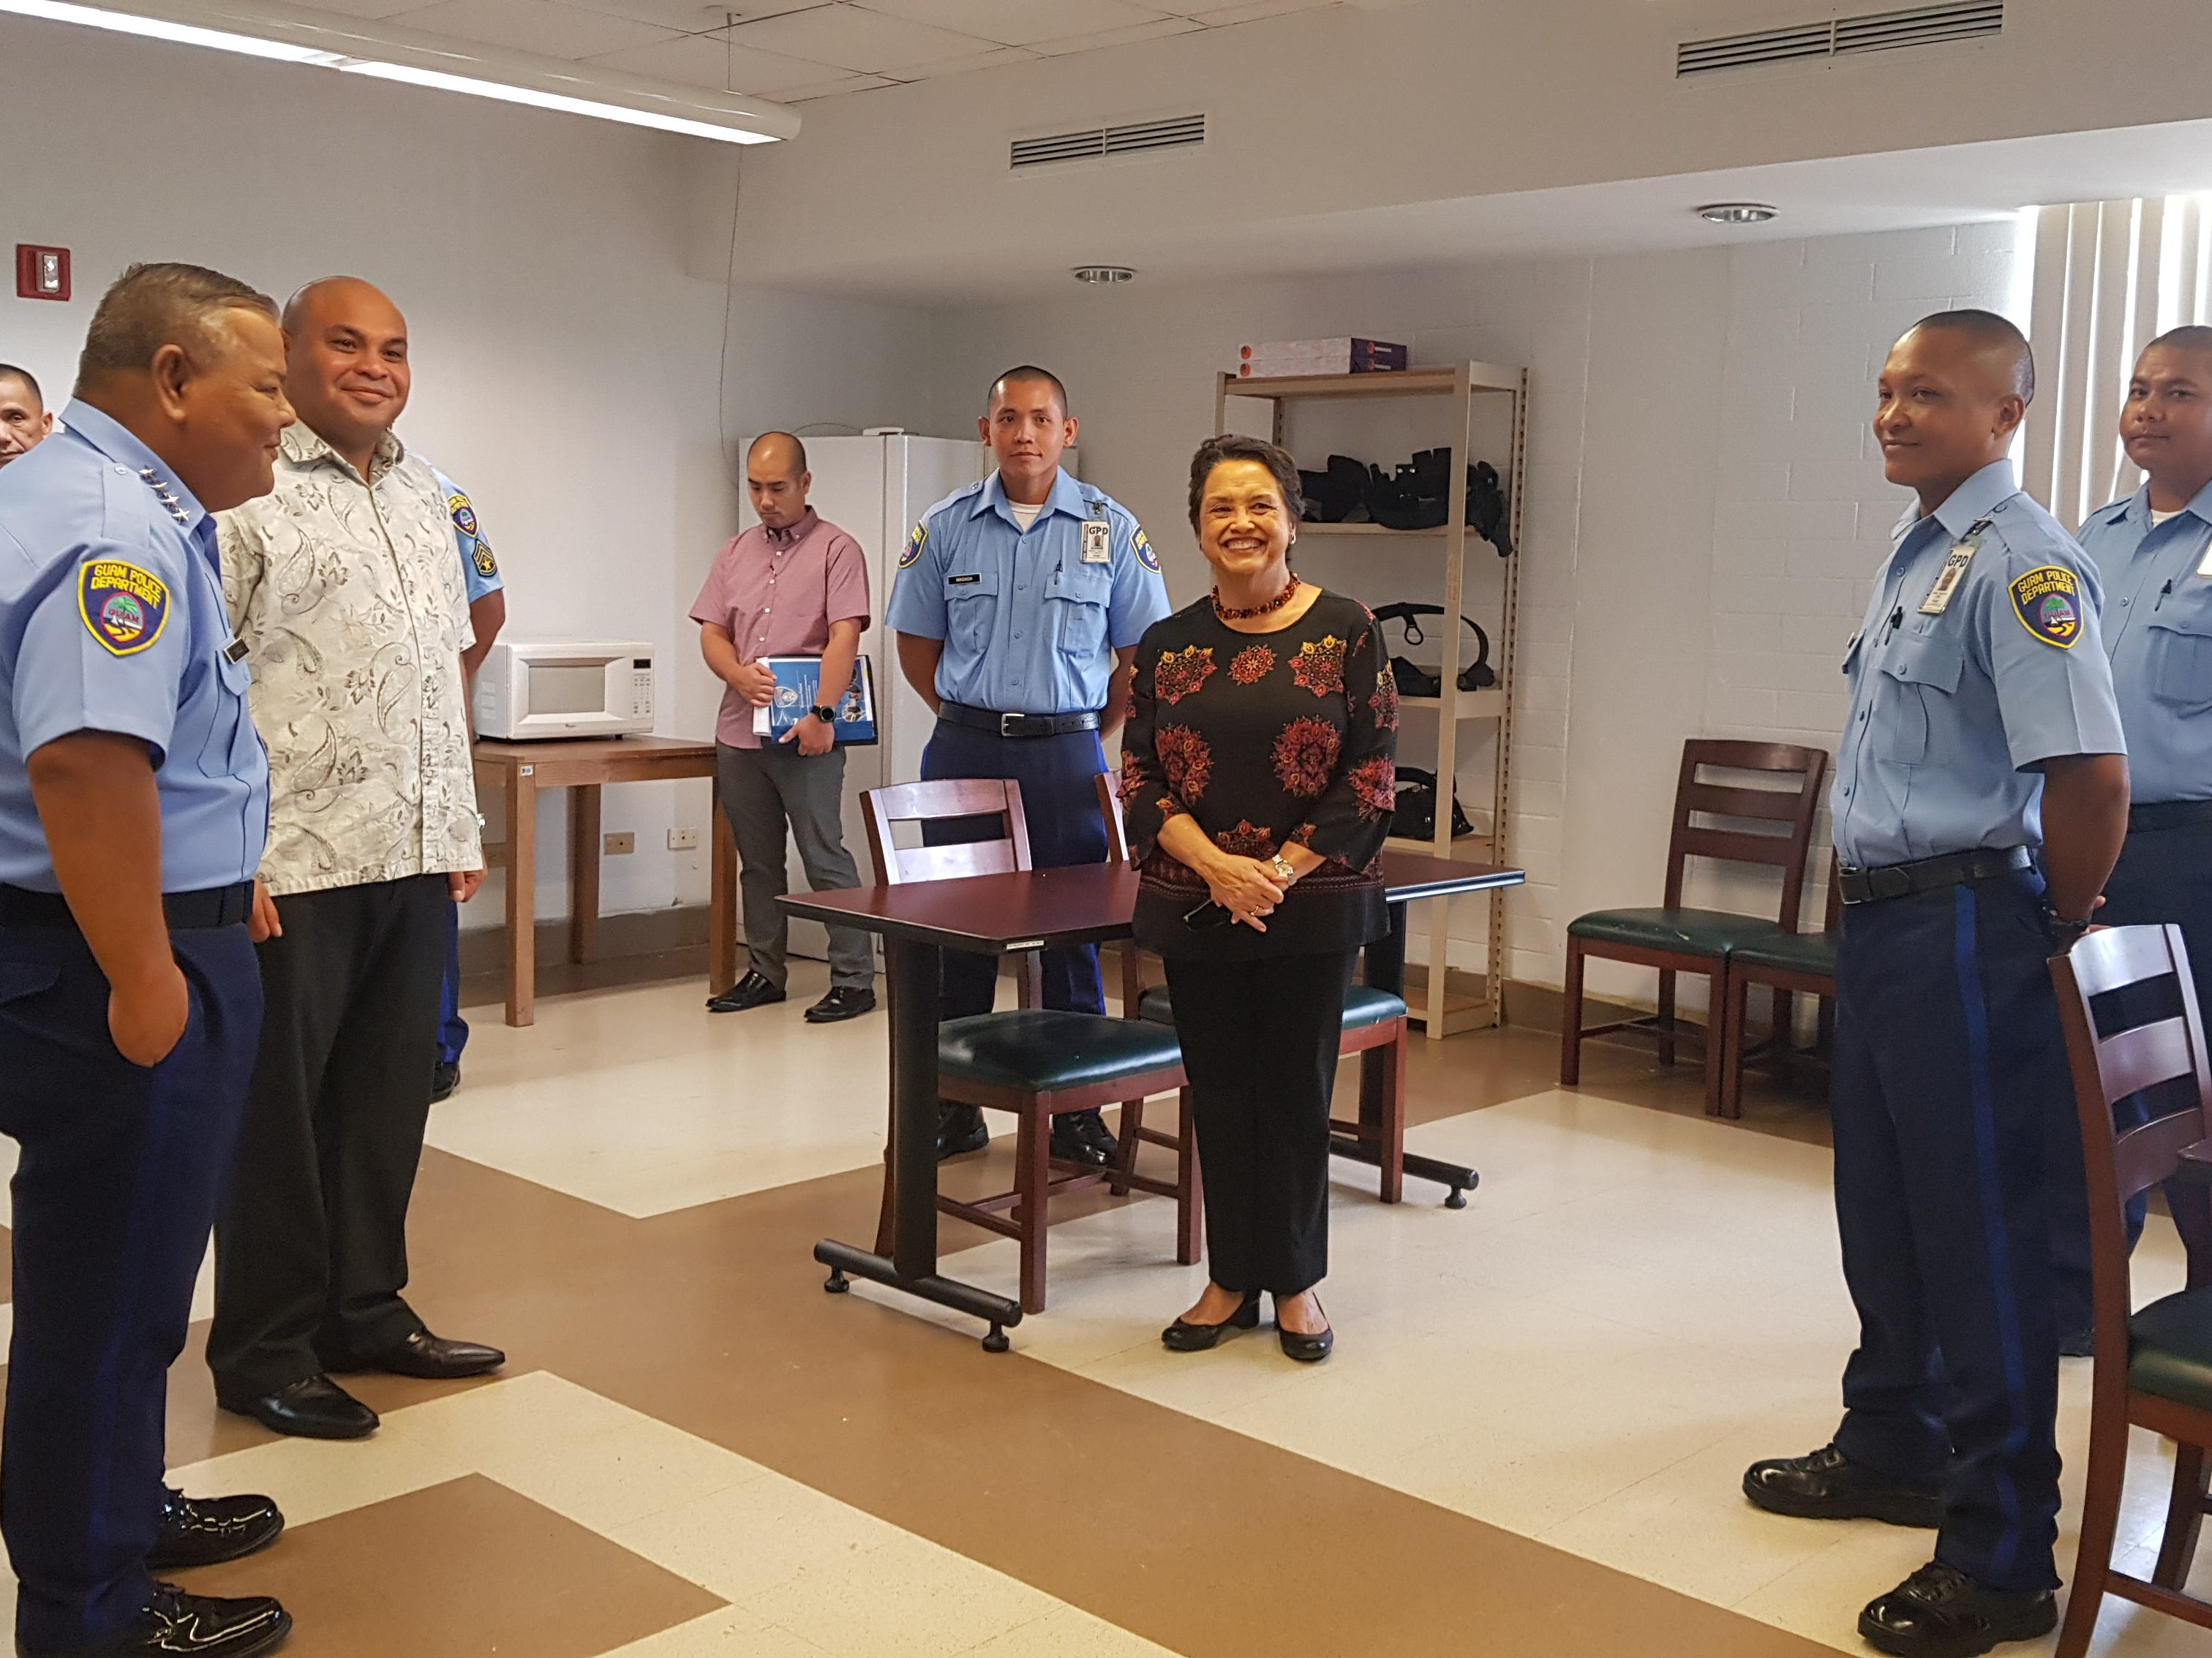 Gov. Lou Leon Guerrero and Lt. Gov. Josh Tenorio greet Guam Police Department recruits during a visit to the GPD headquarters in Tiyan on Jan. 17, 2019.